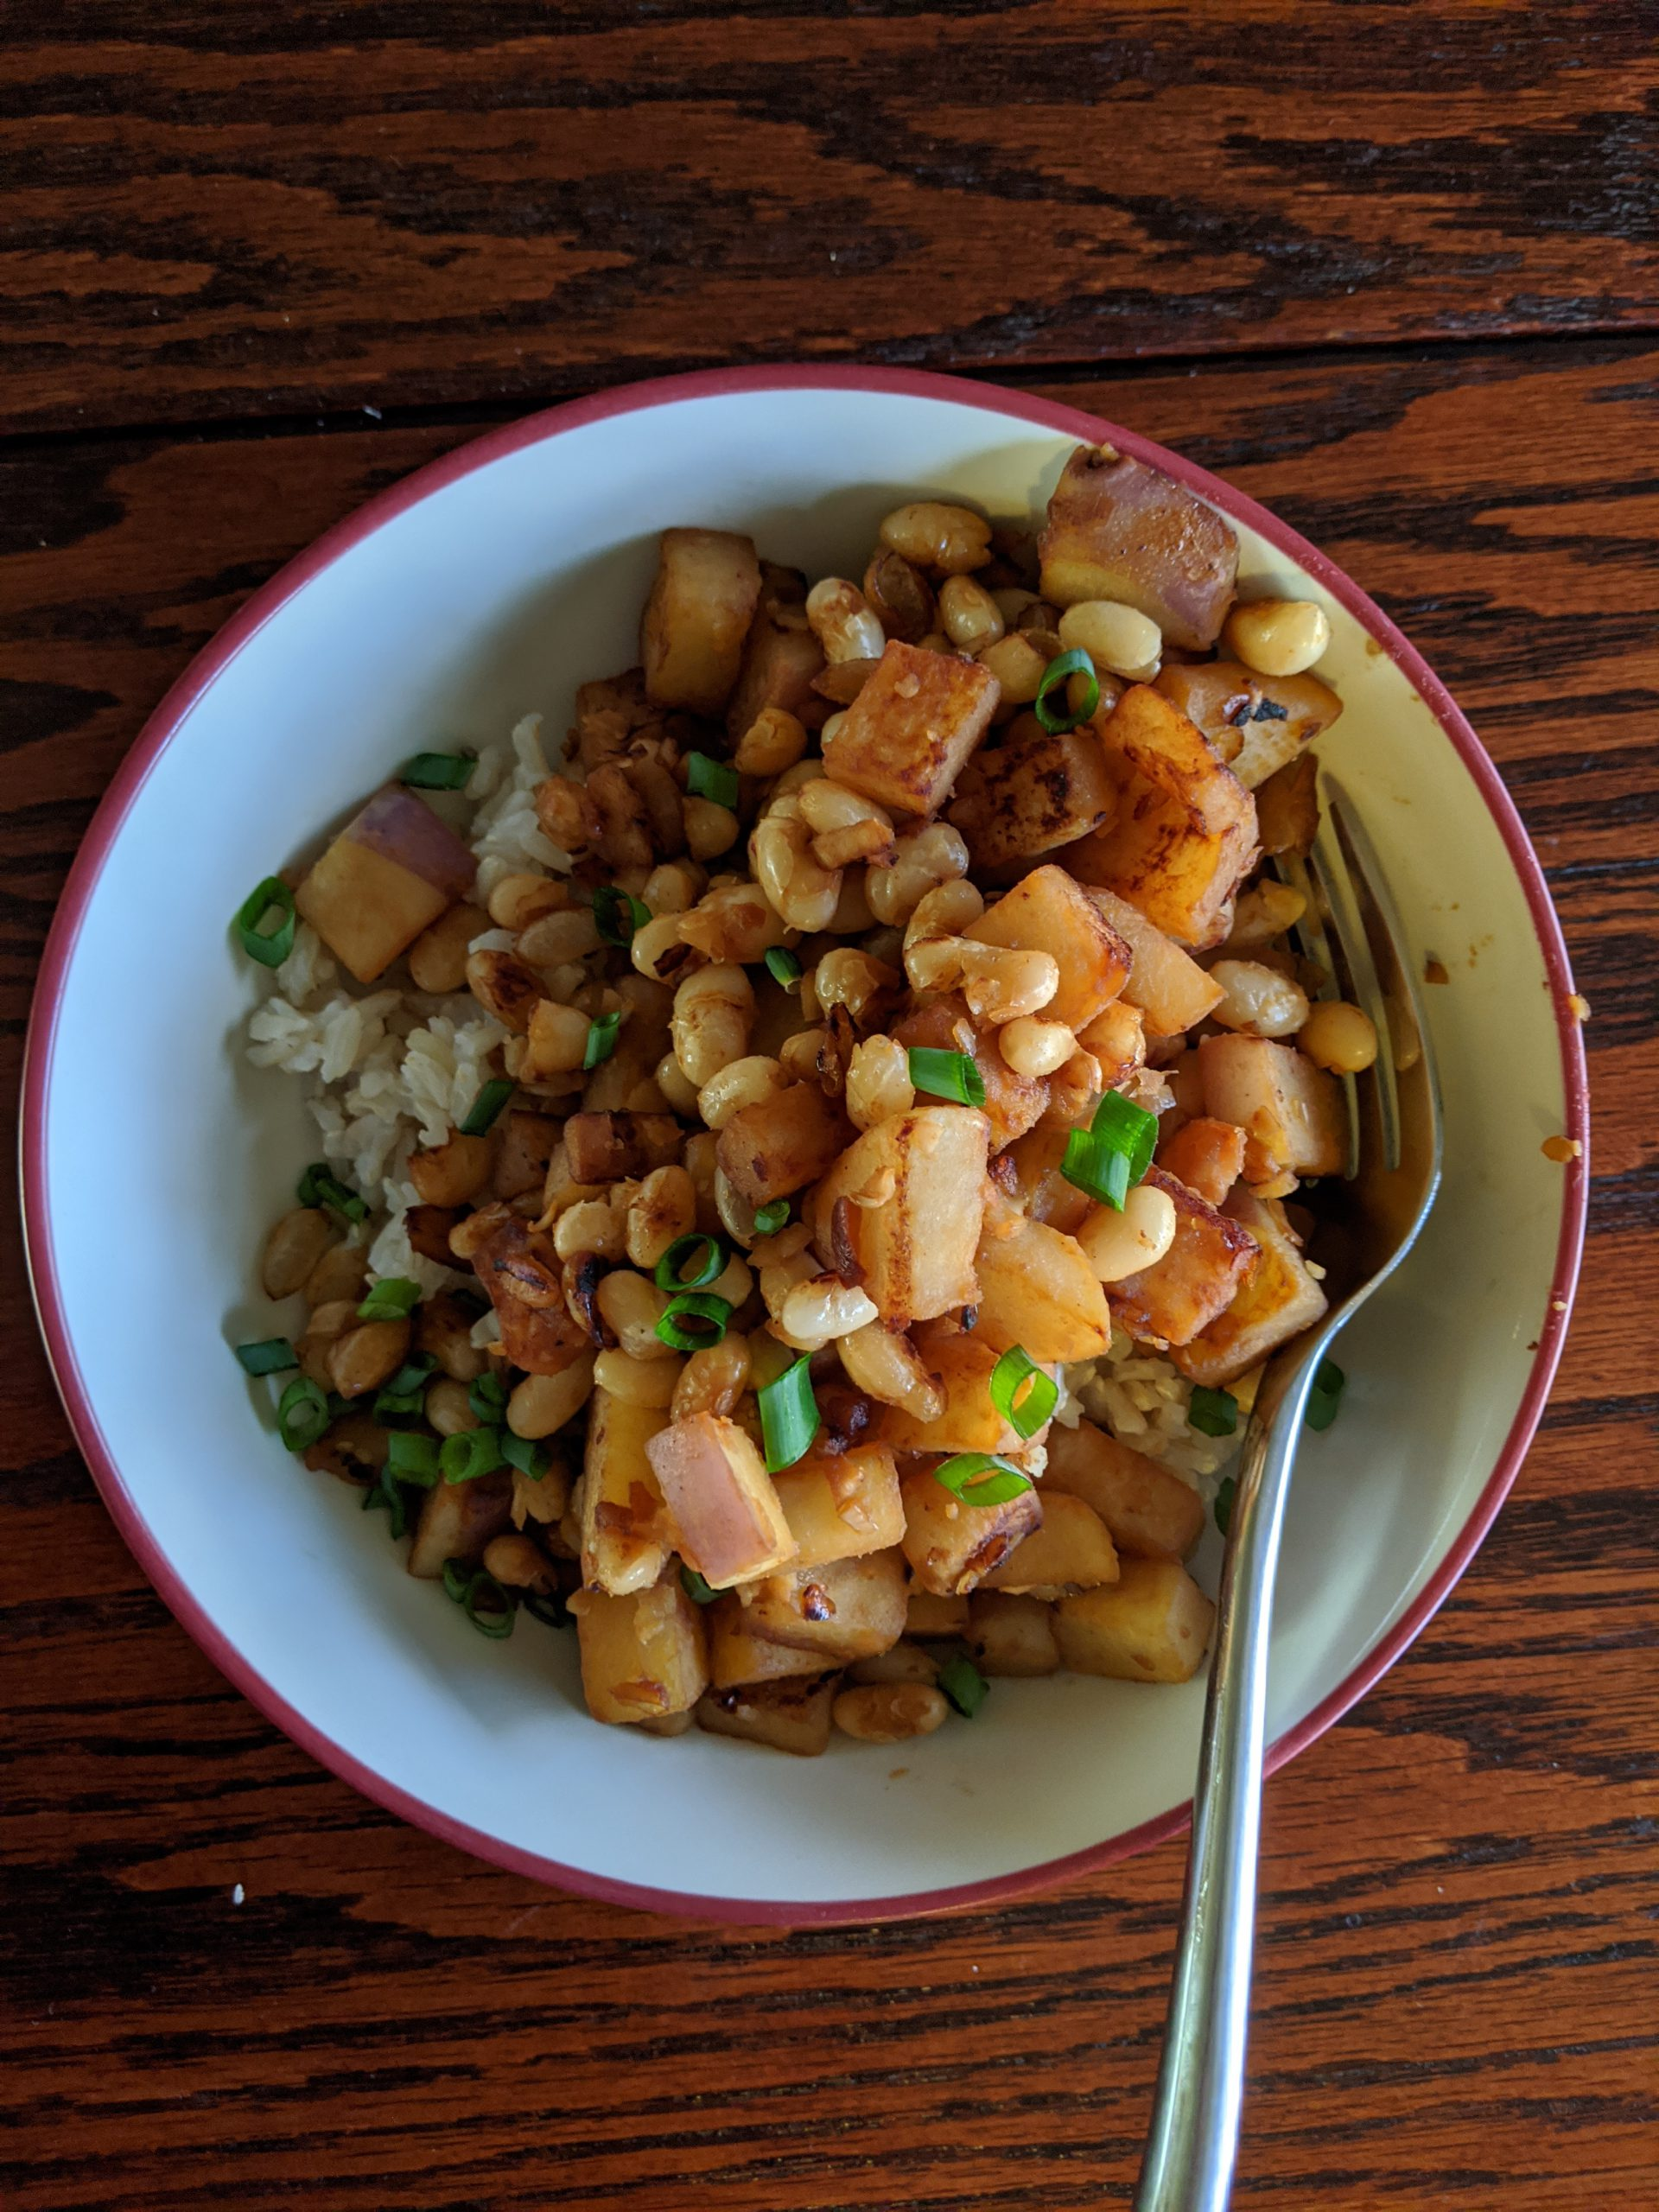 white beans and turnip stir fry